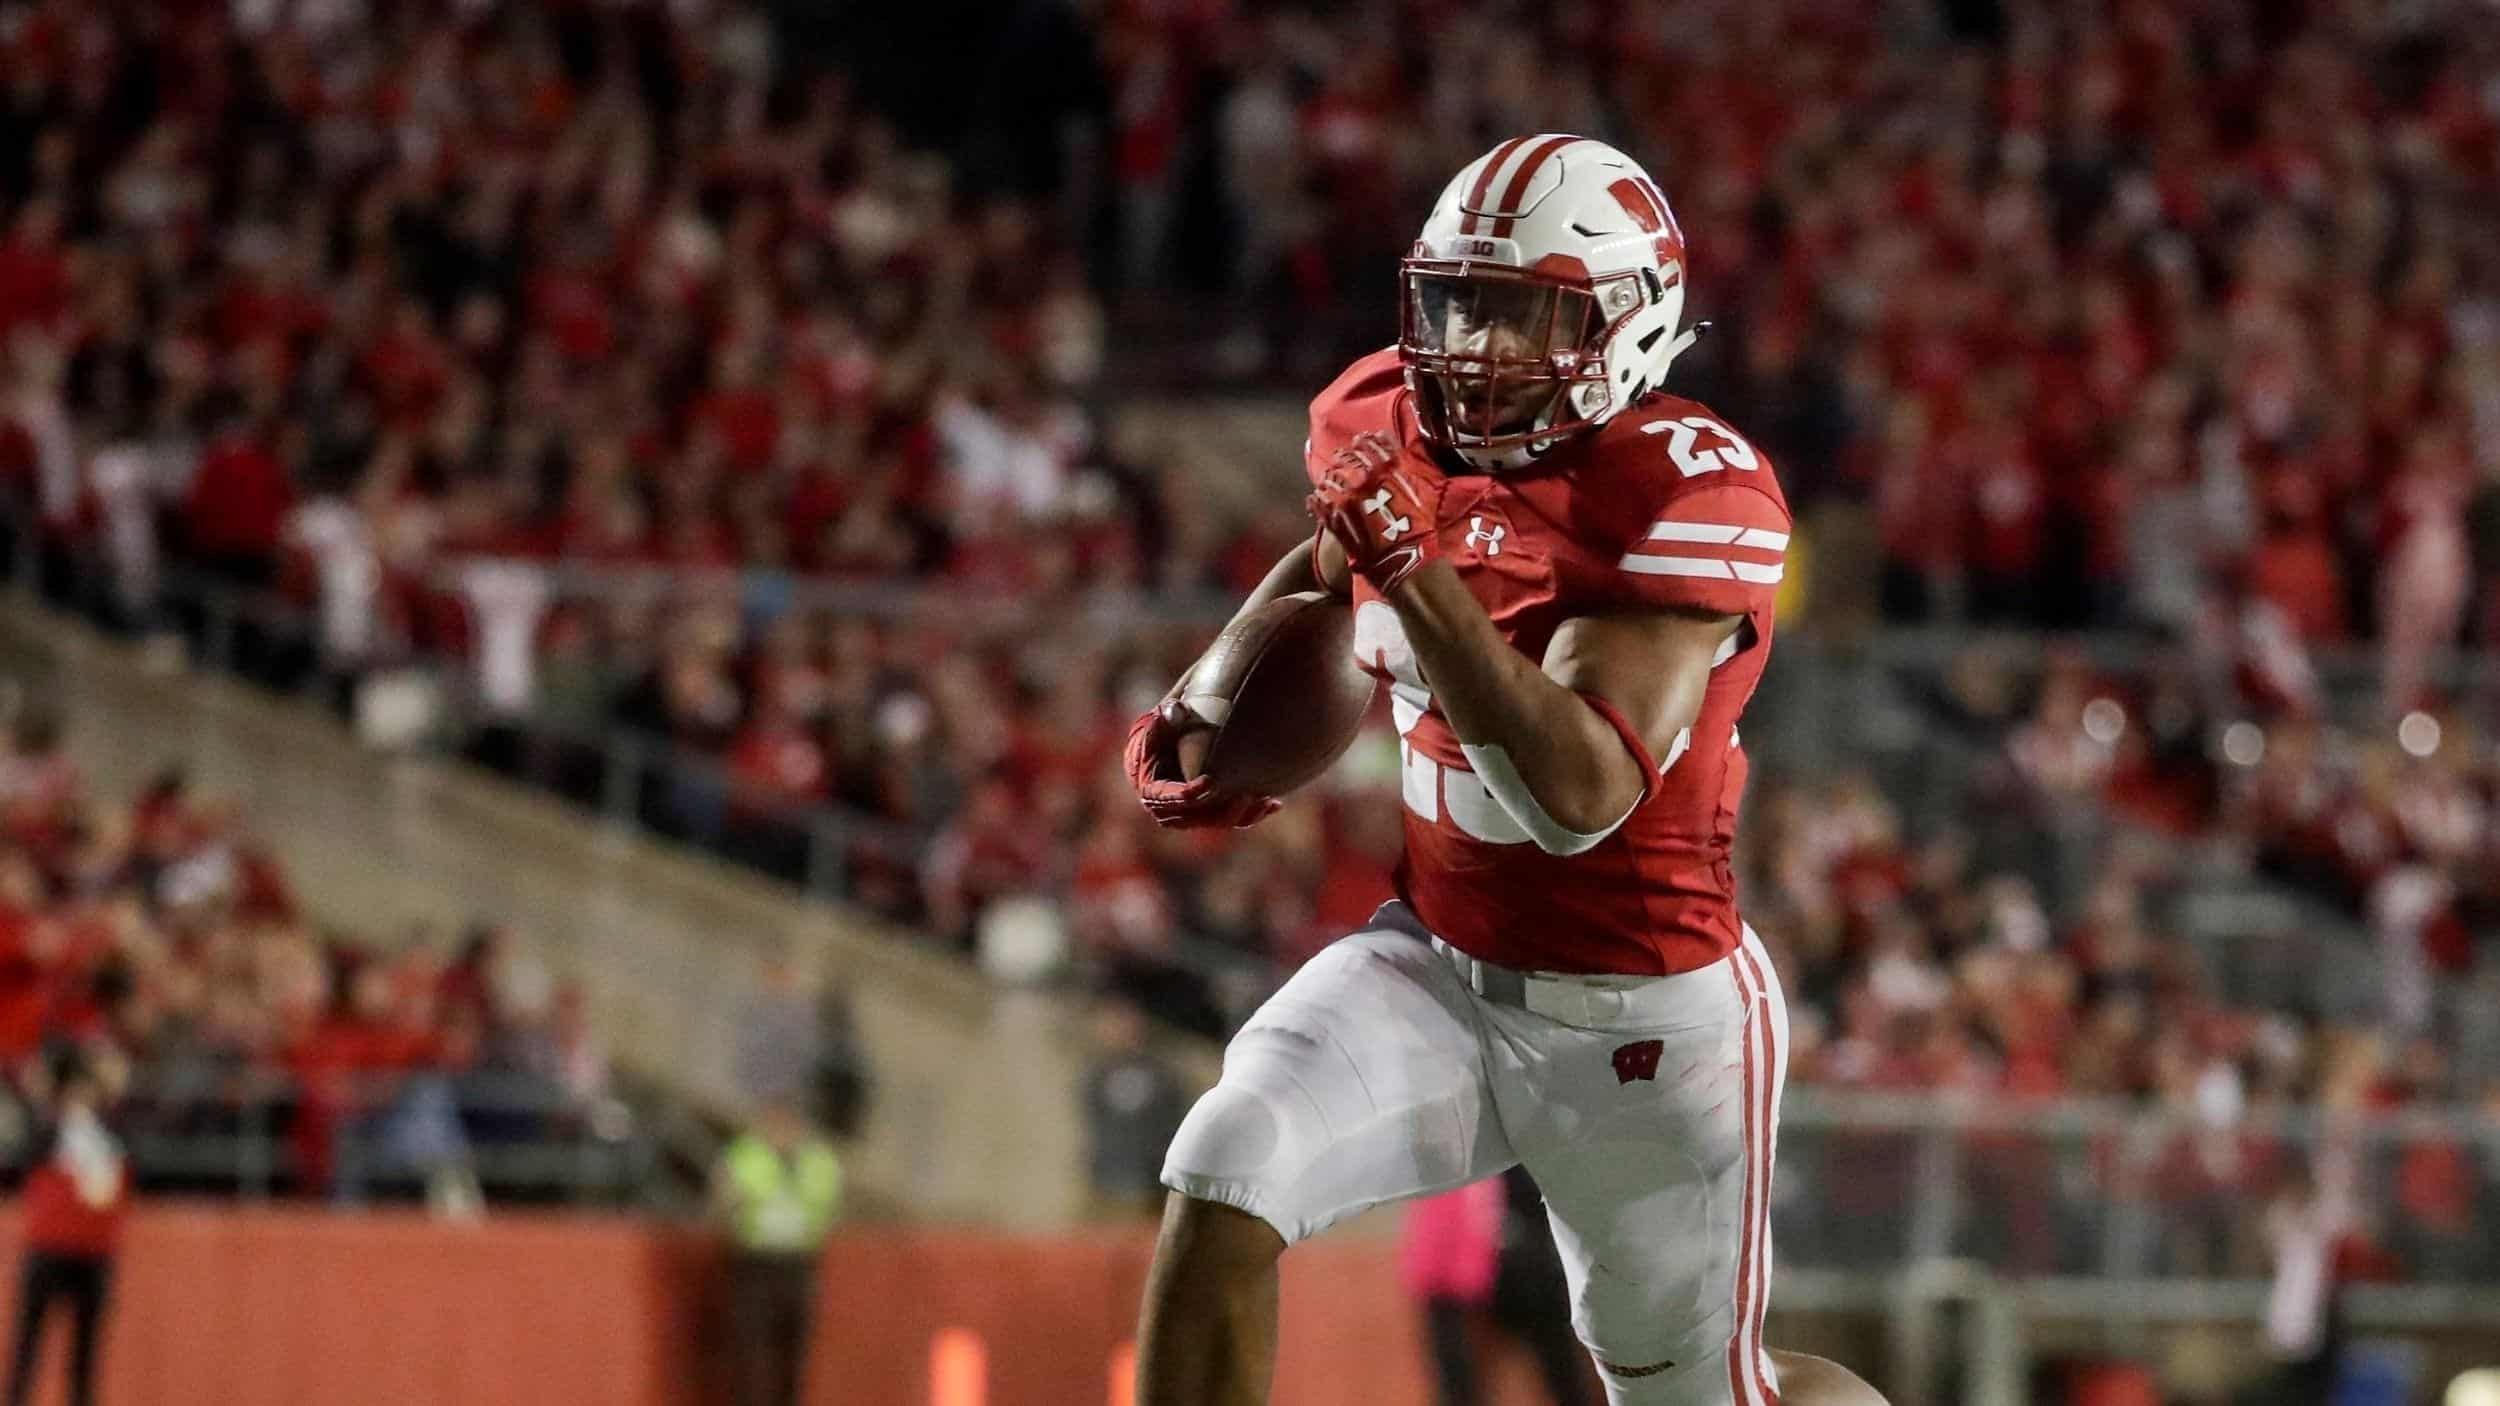 Projecting where running backs will land in the 2020 NFL Draft